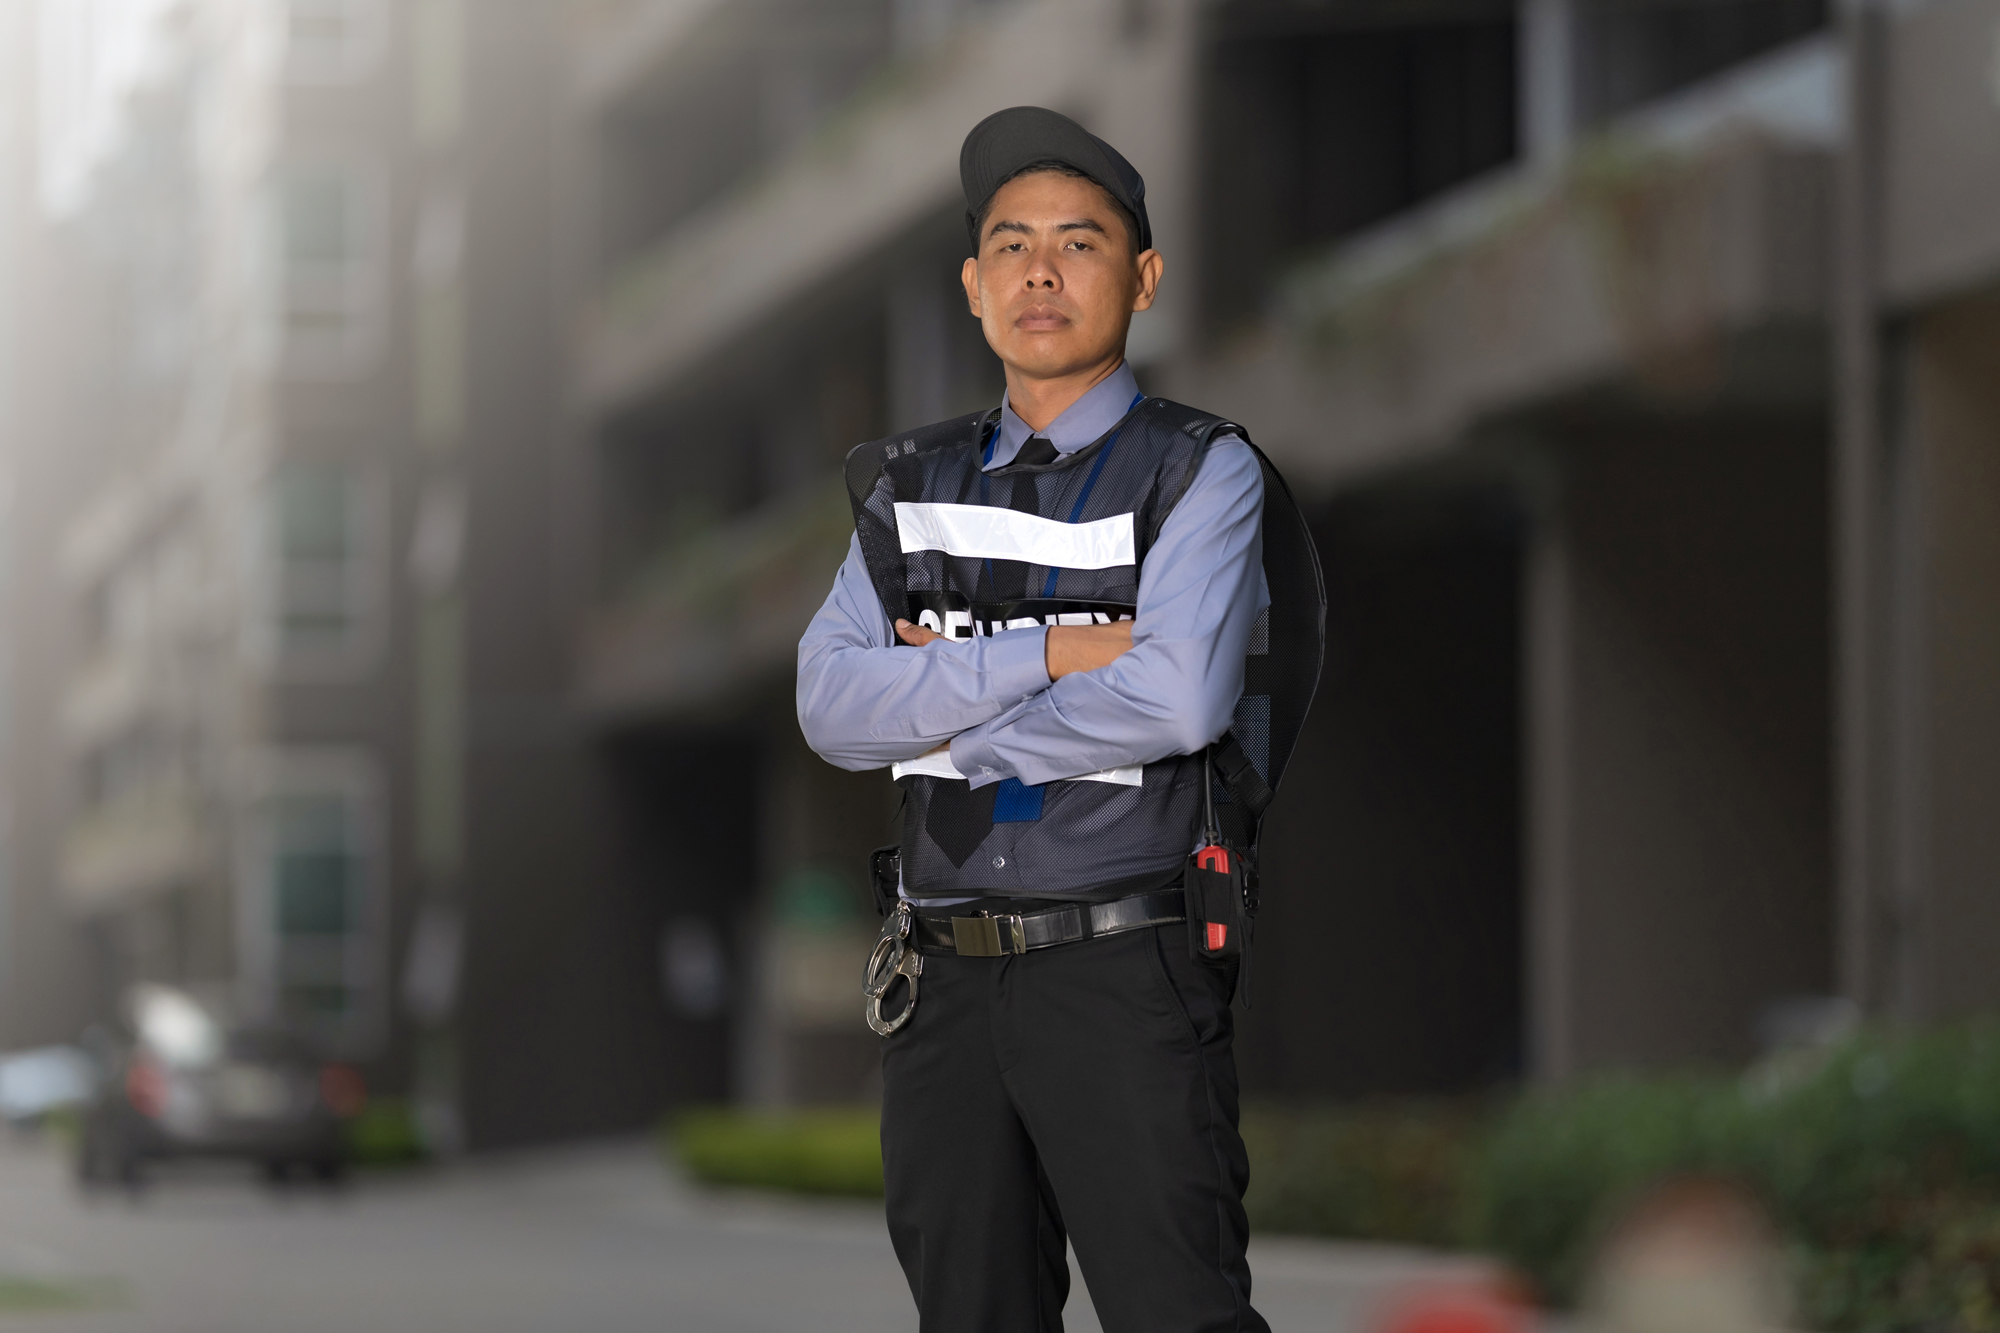 Security Guard Patrol Systems - Blog